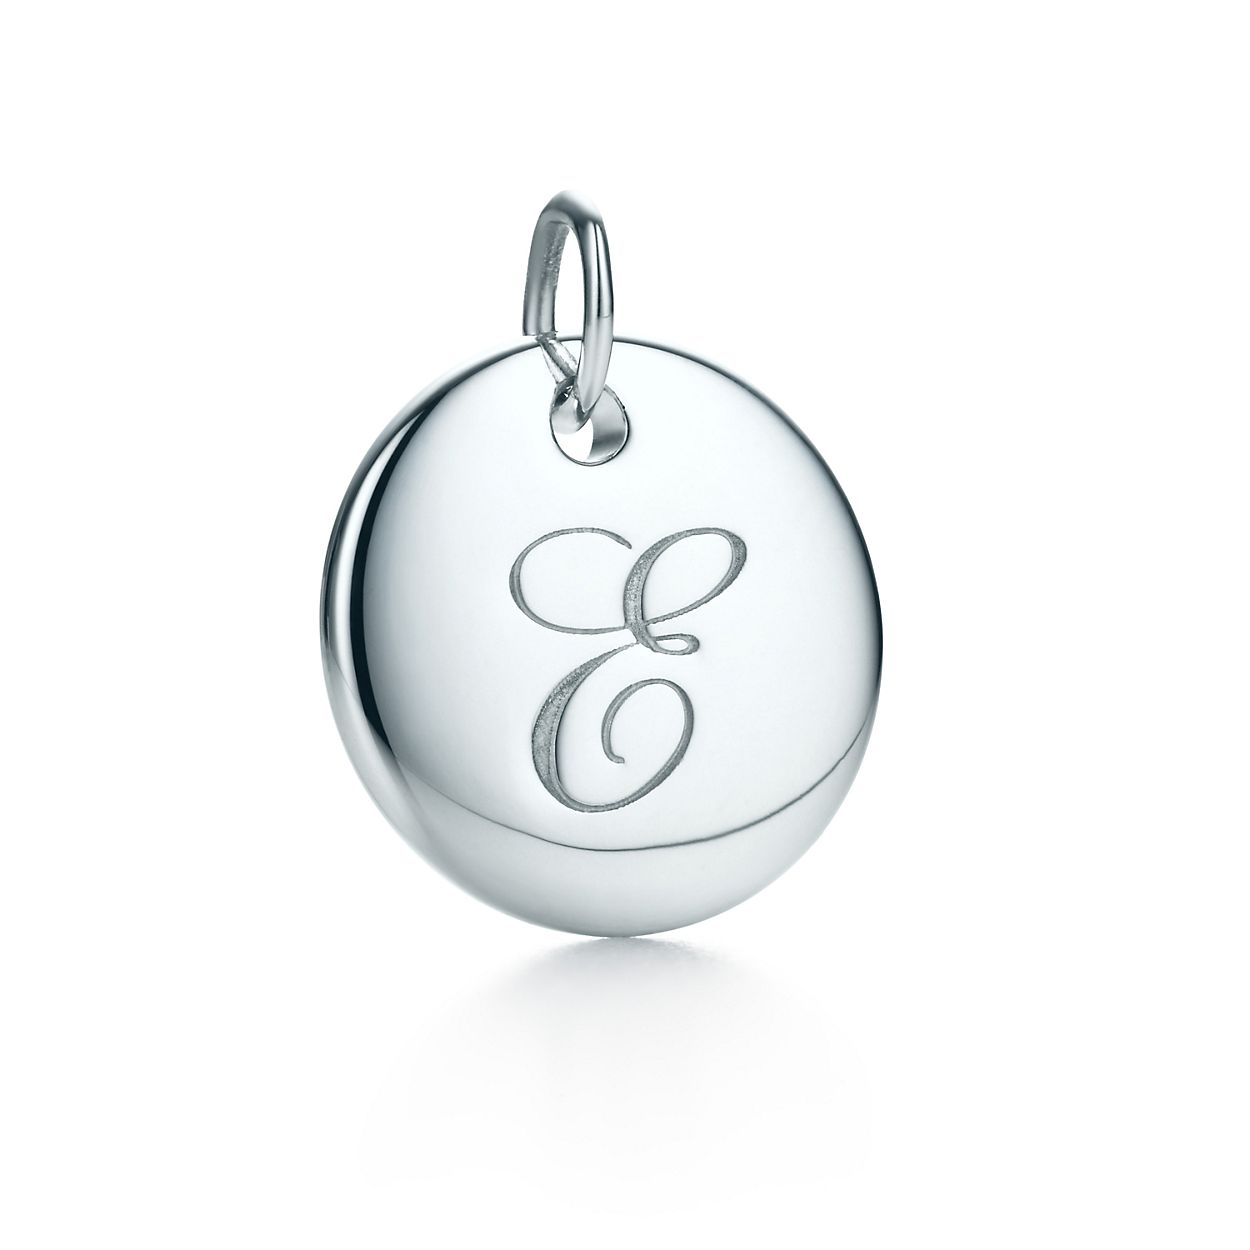 Tiffany Notes alphabet disc charm in silver, small Letters A-Z available - Size T Tiffany & Co.